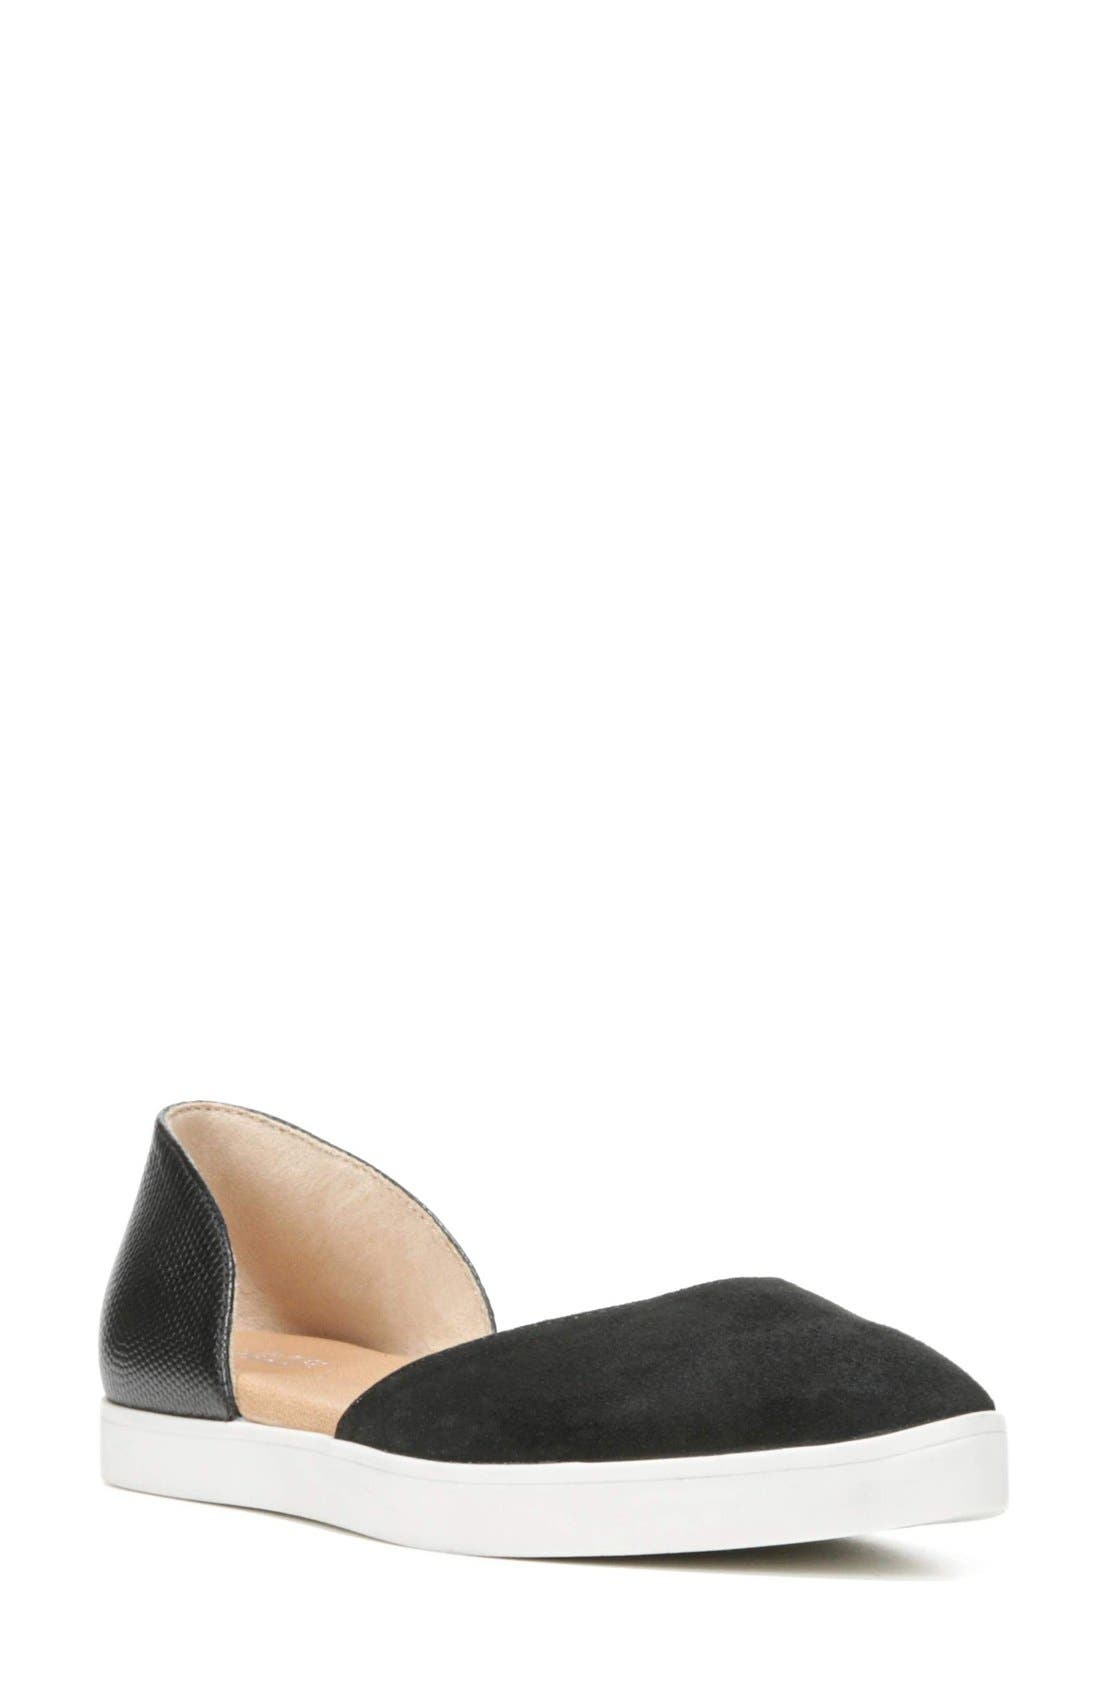 Vienna II d'Orsay Flat,                             Main thumbnail 1, color,                             Black Suede/ Leather